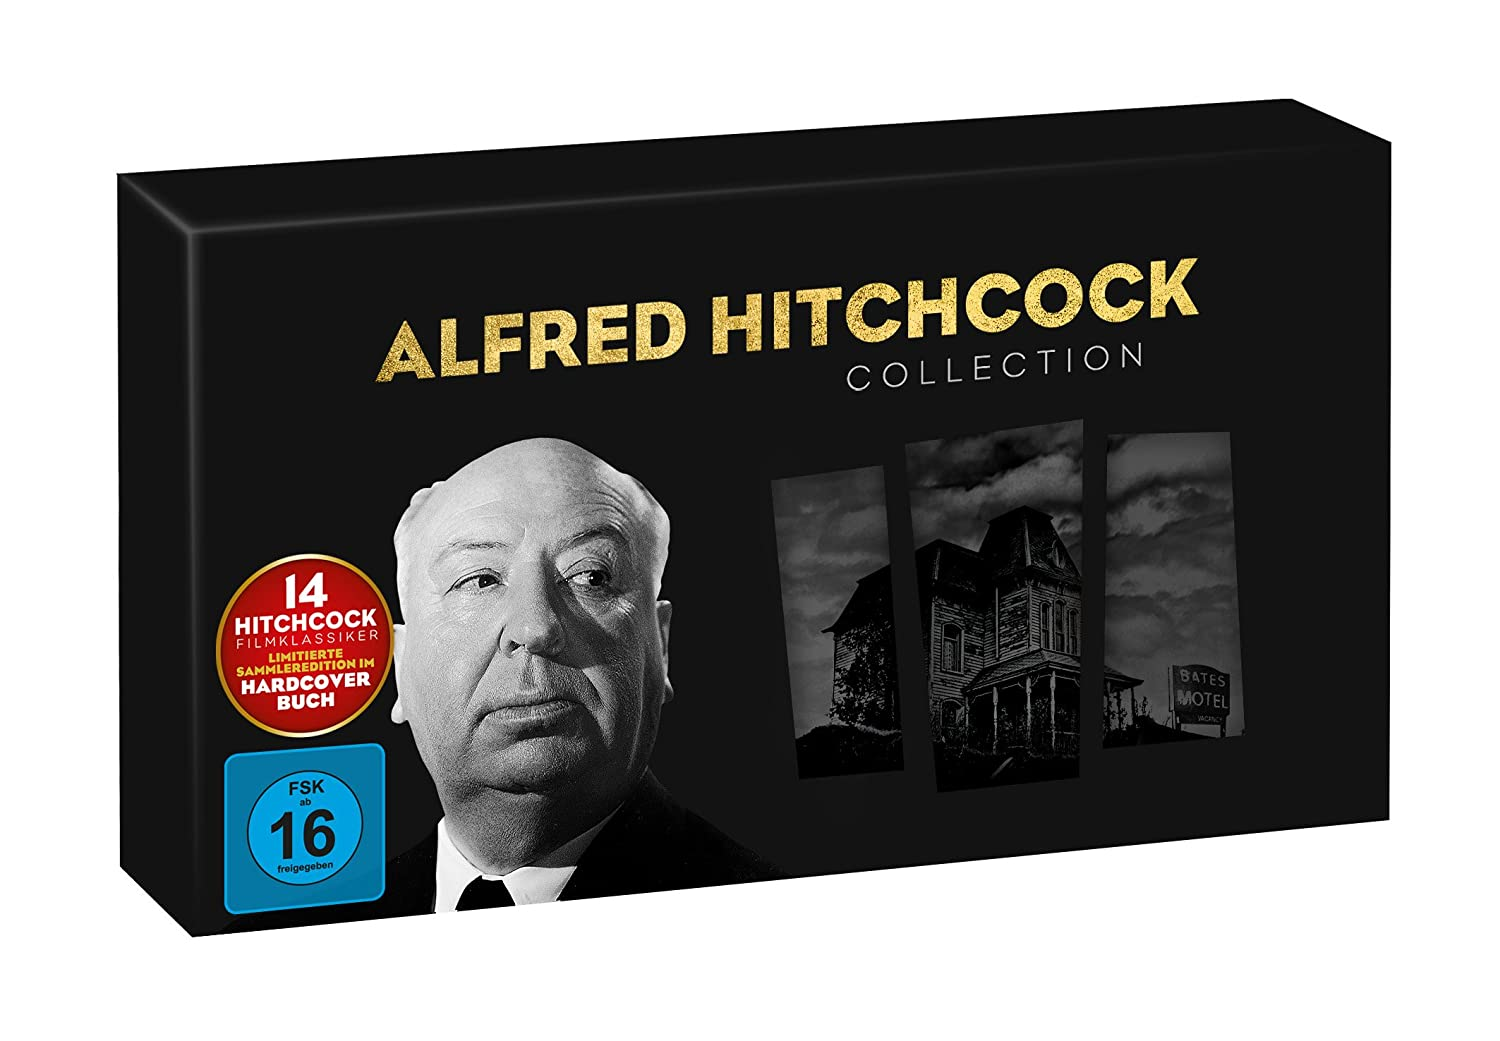 German 14-DVD Alfred Hitchcock Collection, hardback book limited edition (Universal)